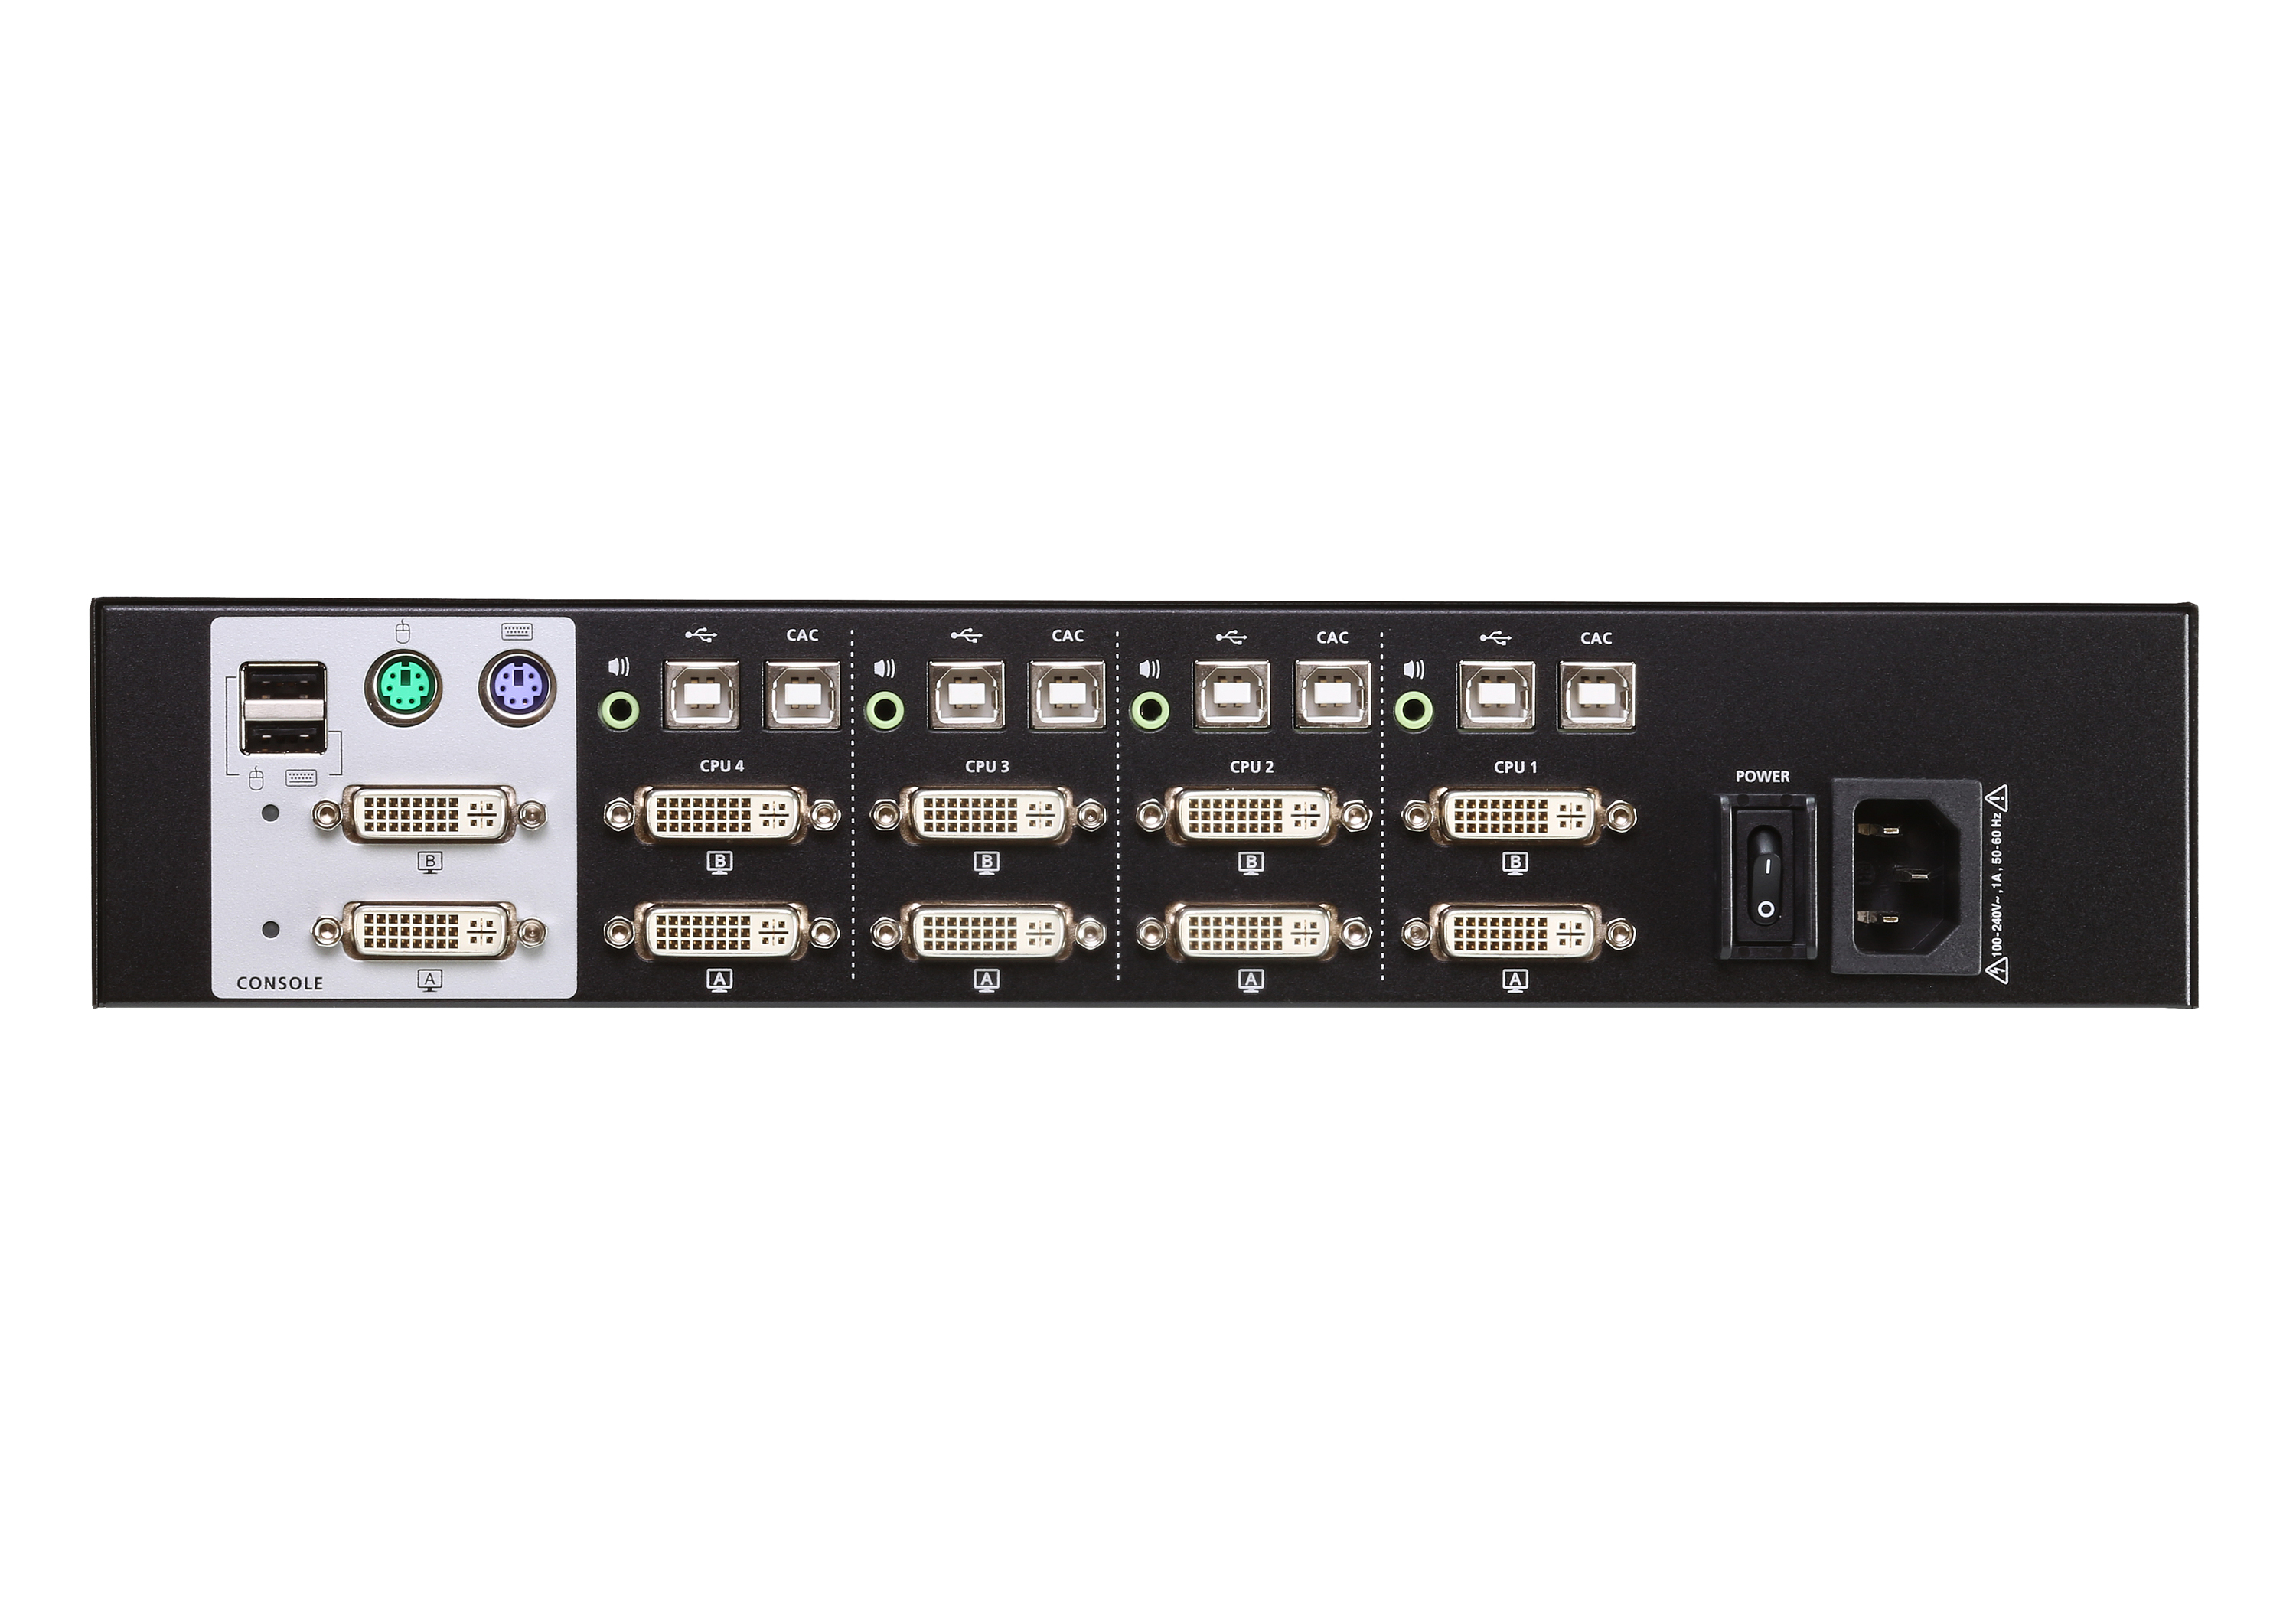 4-Port USB DVI Dual Display Secure KVM Switch (PSS PP v3.0 konform)-2